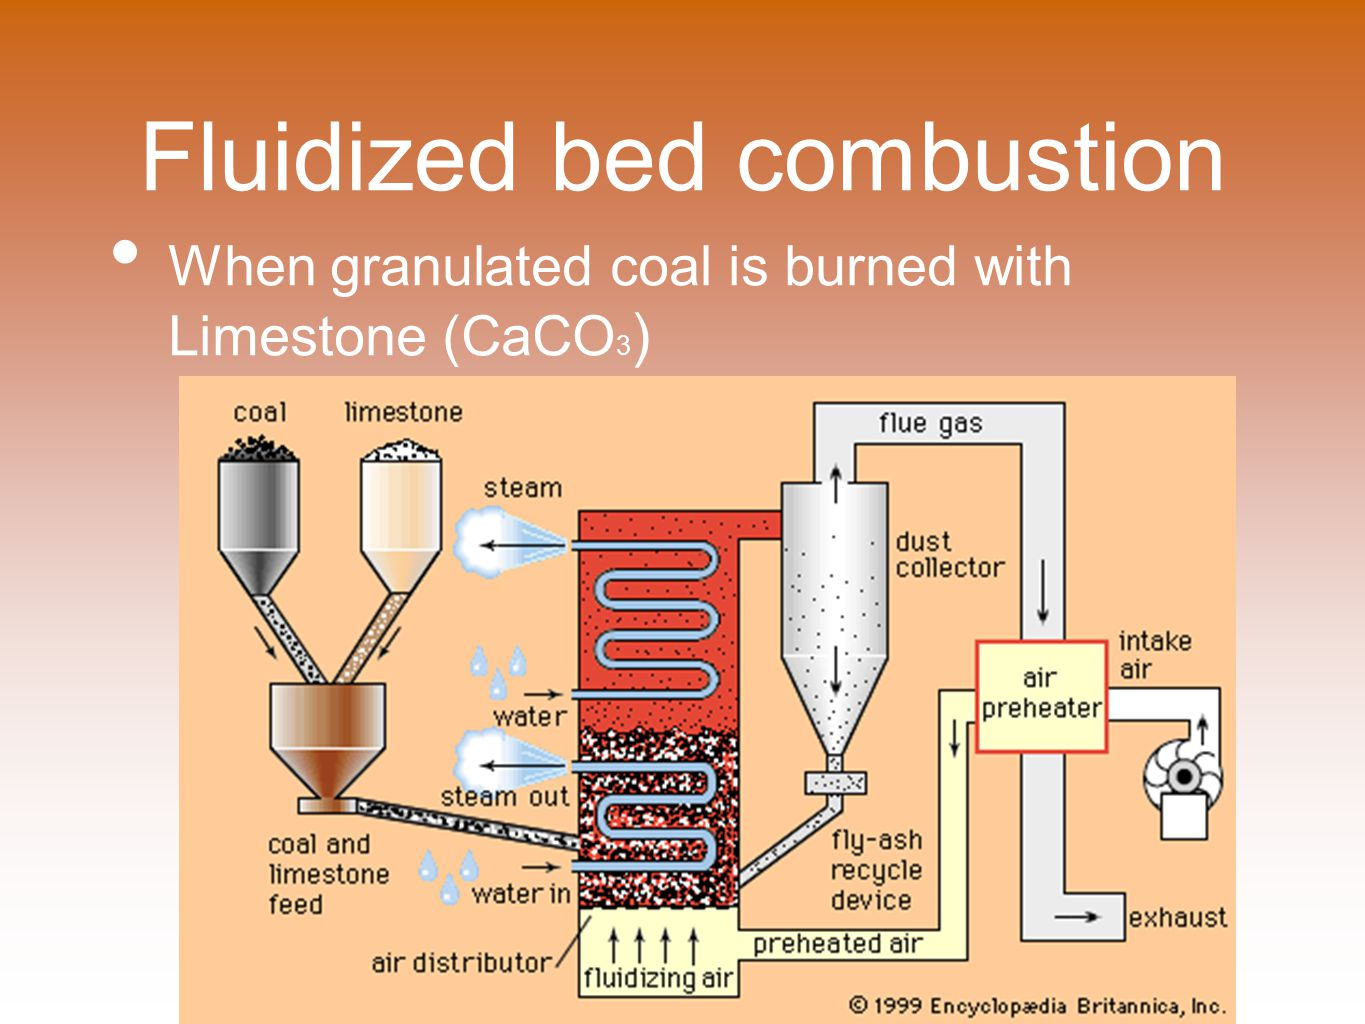 Fluidized bed combustion